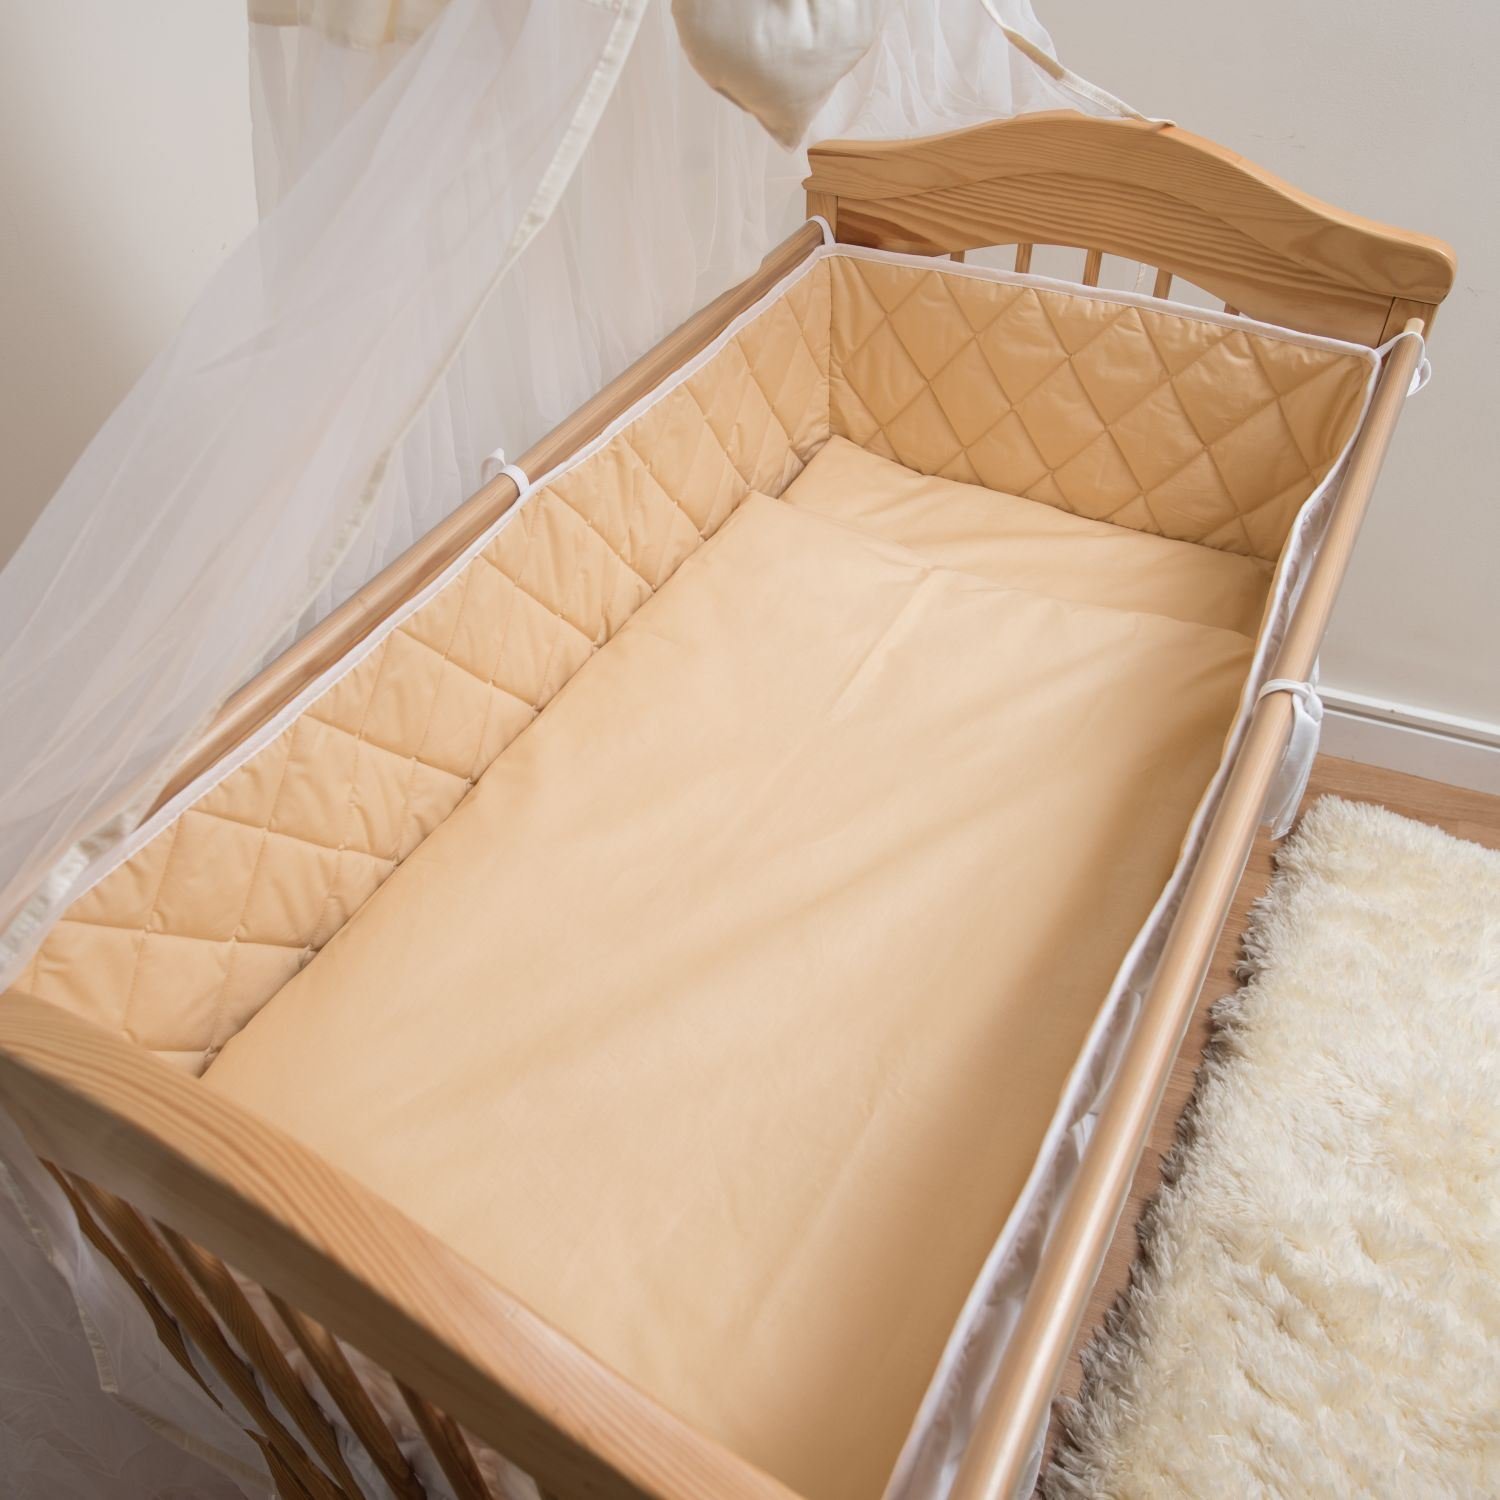 All Round Large COT BUMPER 4 Sided Long Fits All Baby Cots Cotbed | eBay